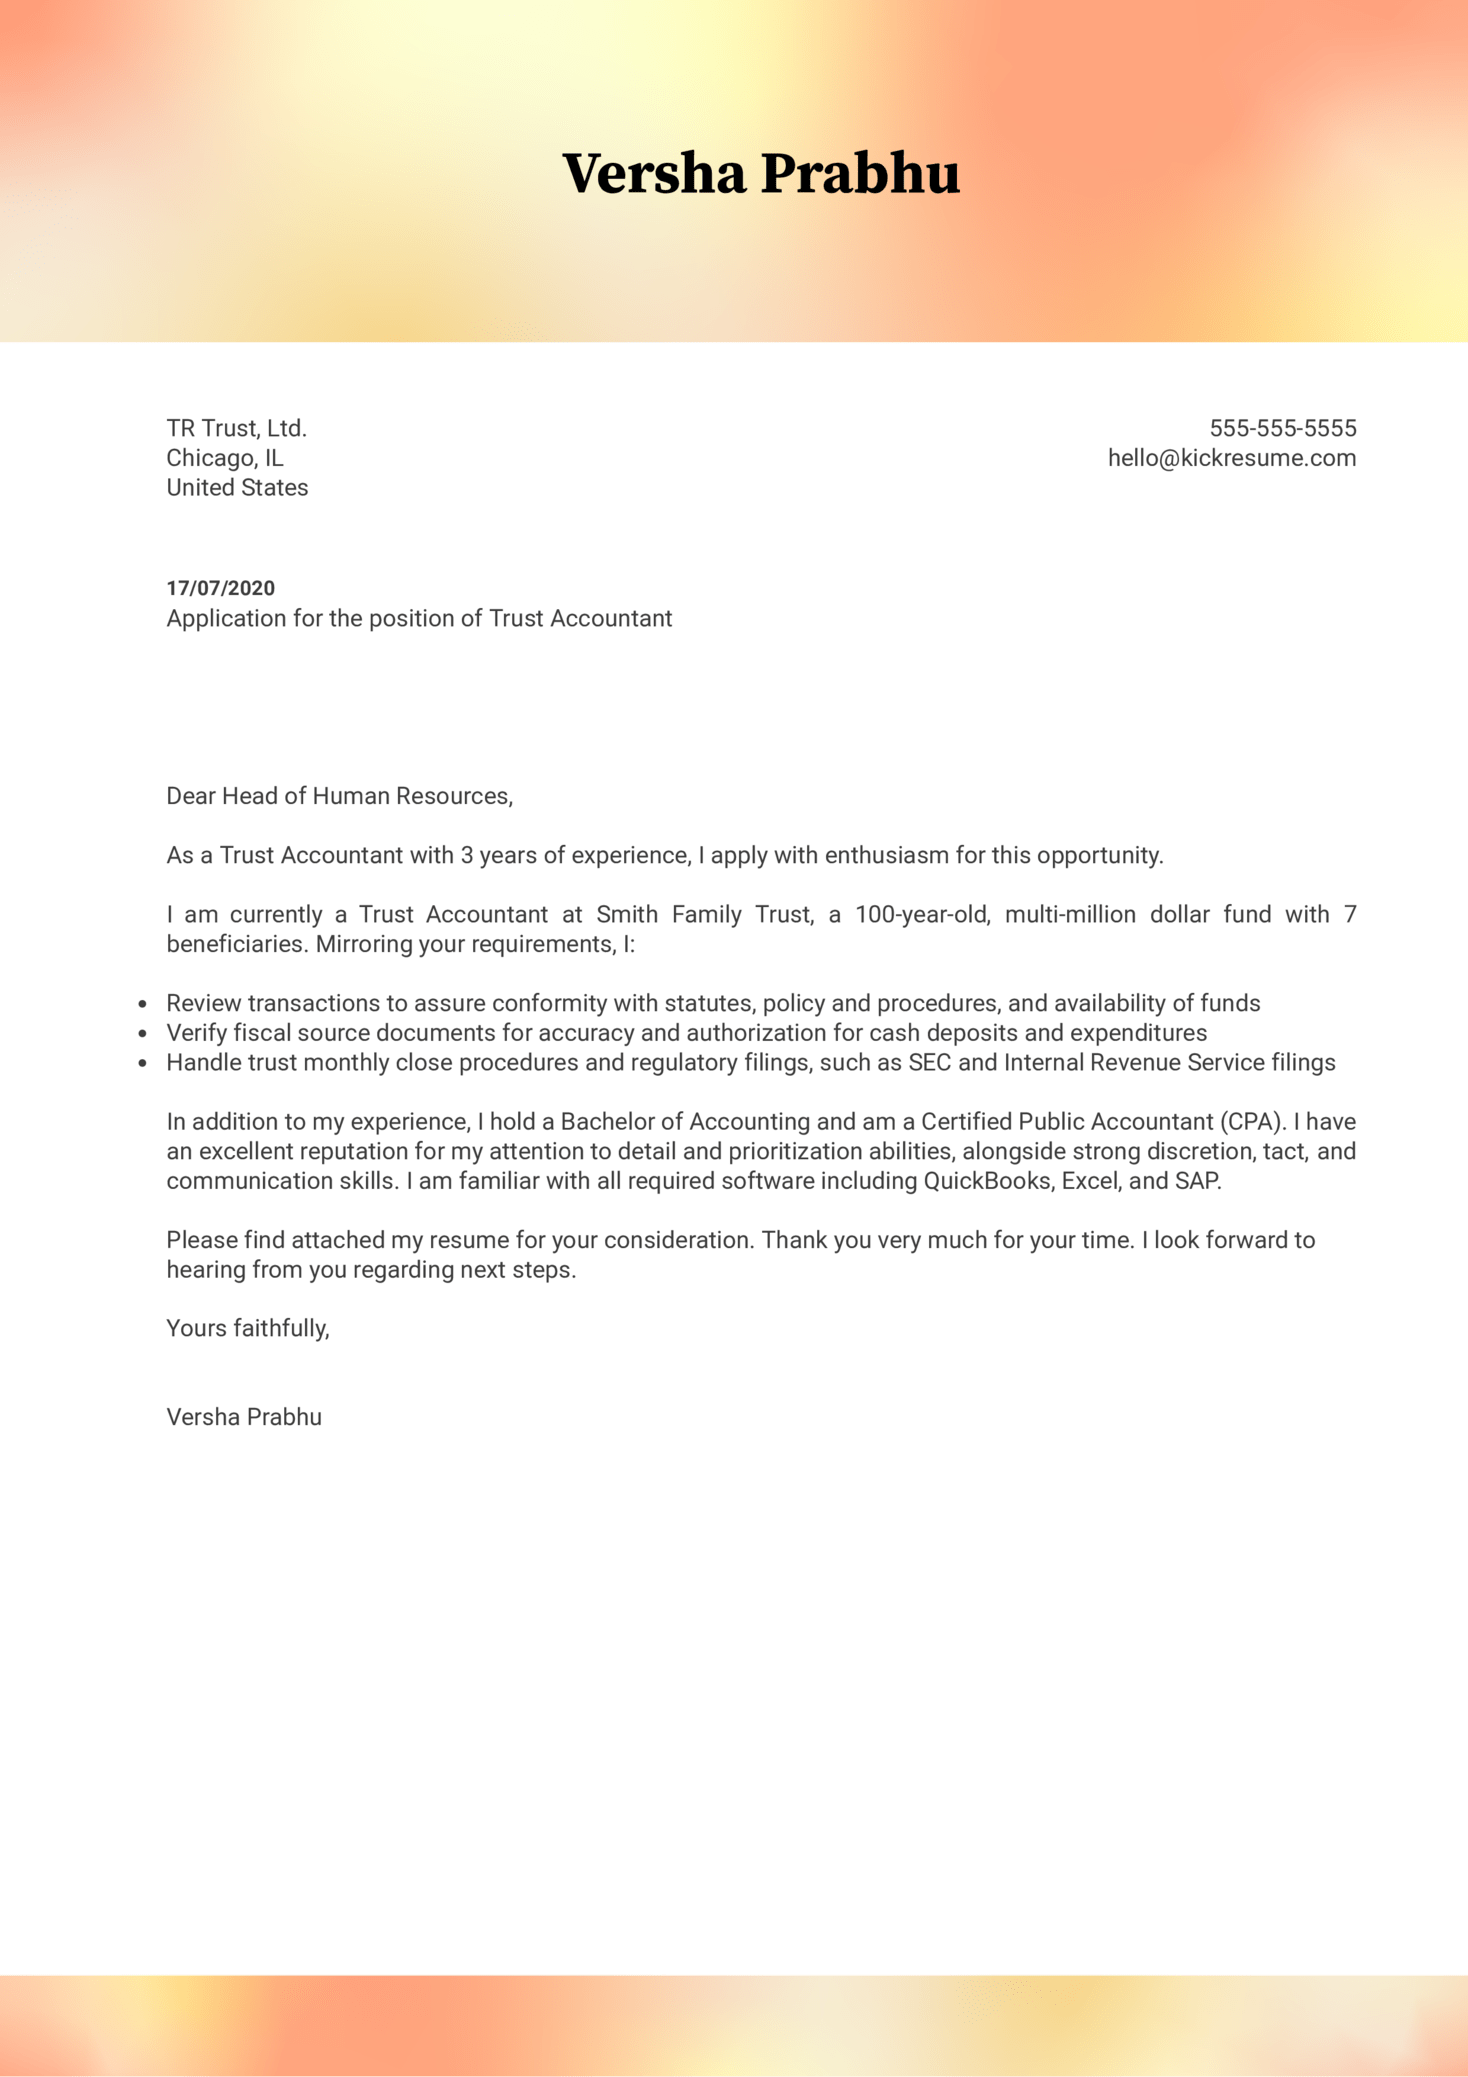 Trust Accountant Cover Letter Example